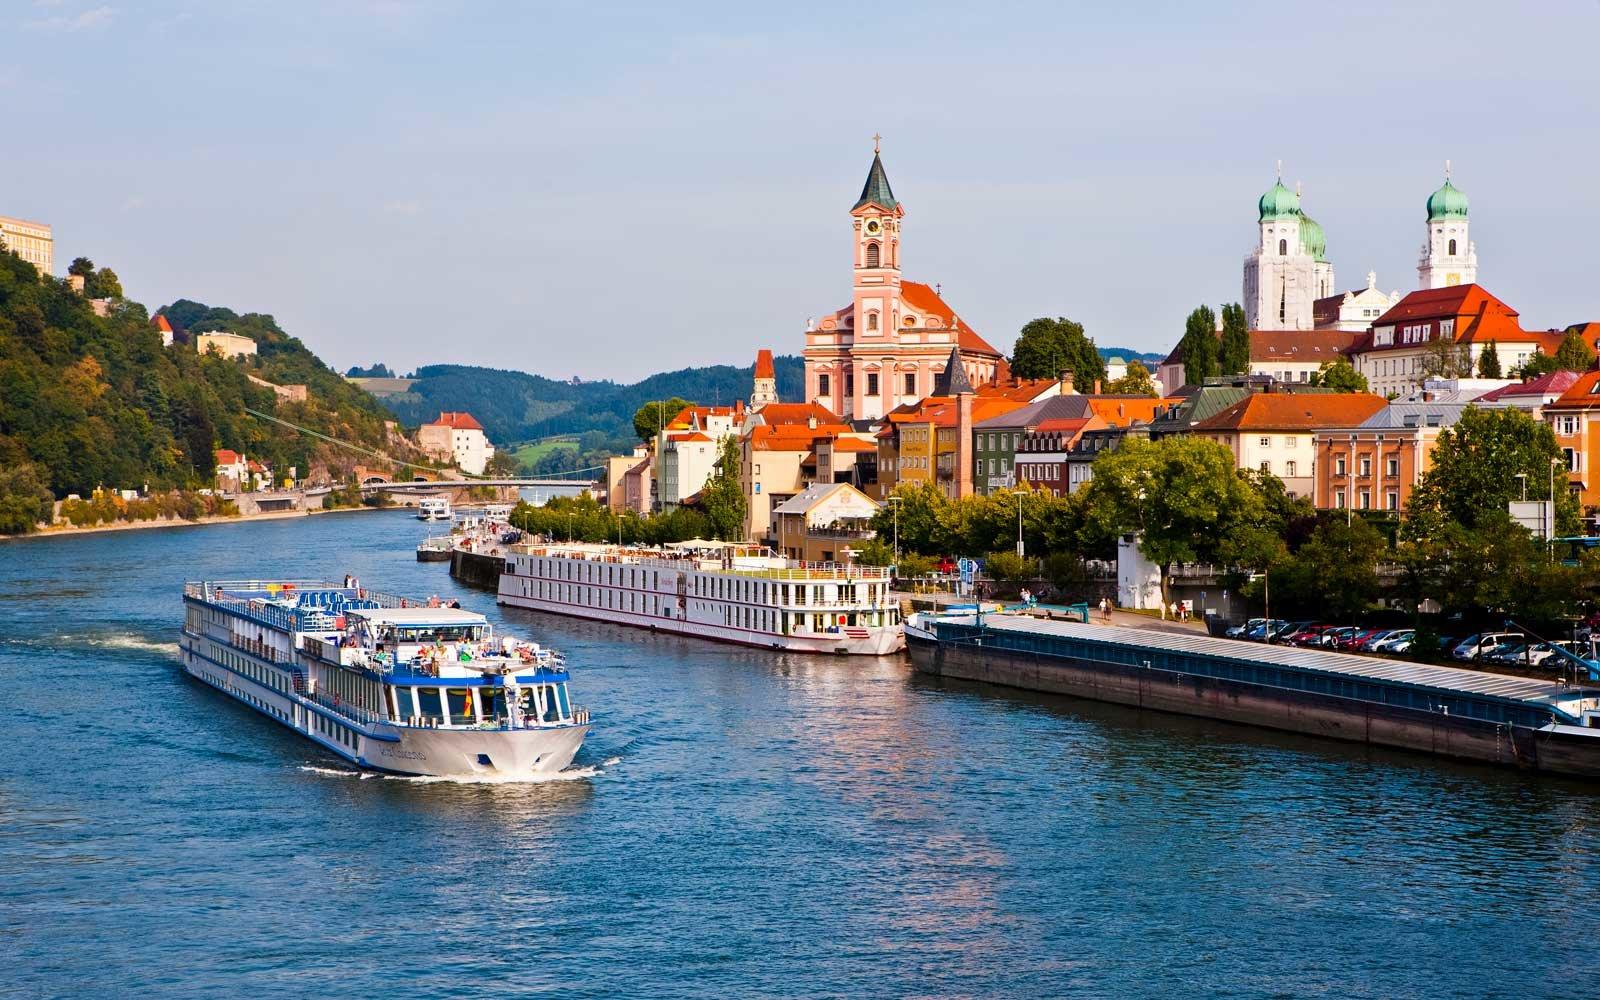 Danube, River, with cruise ship